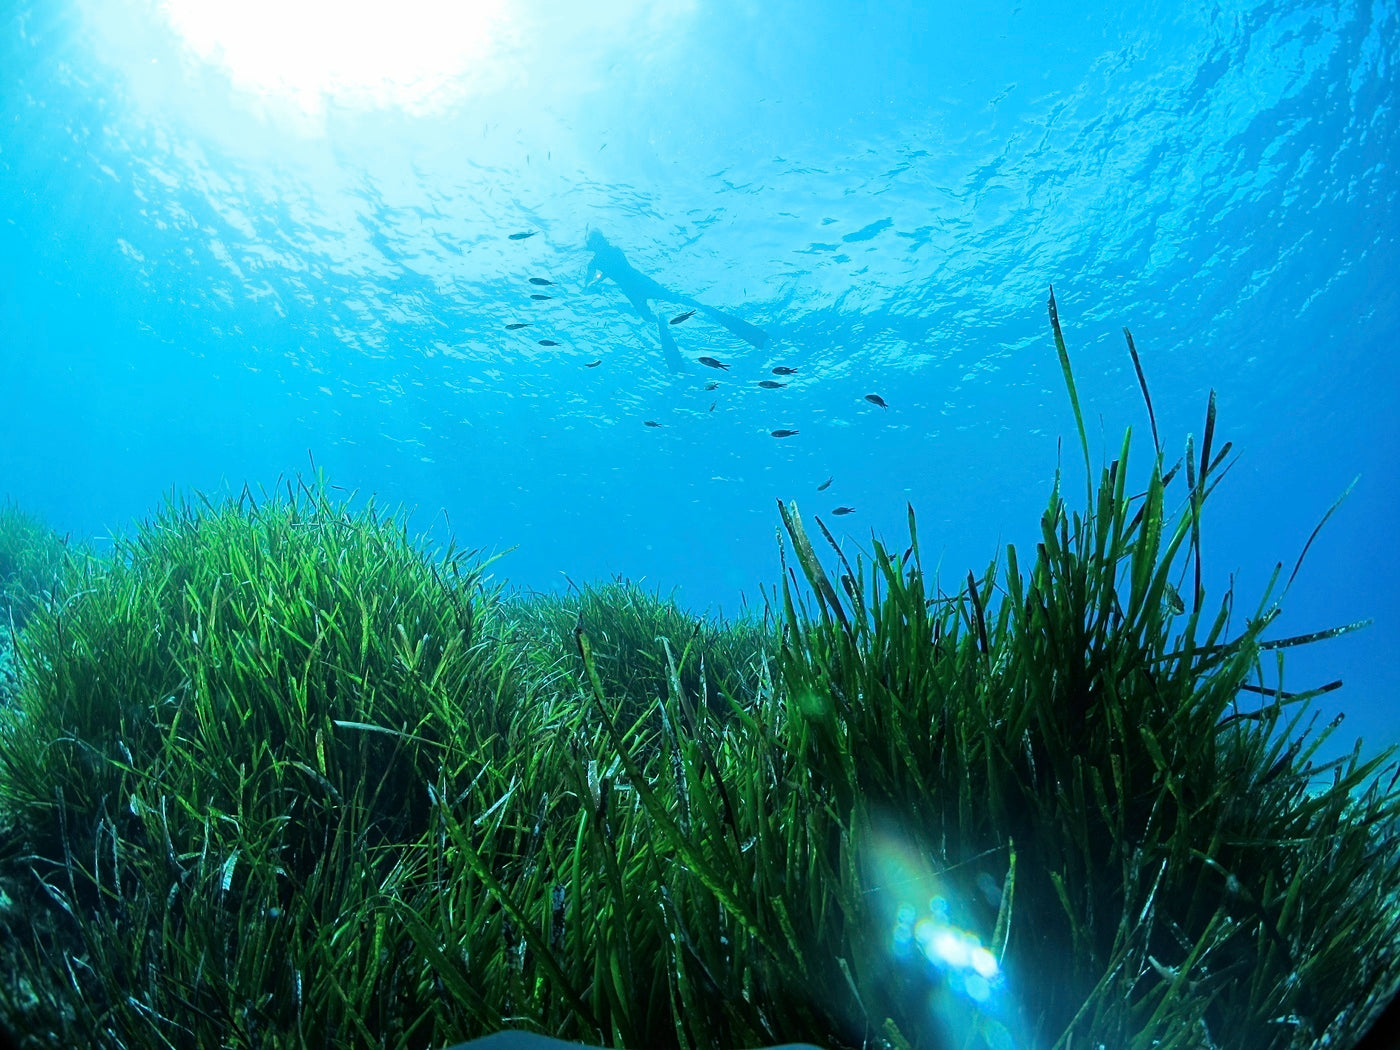 A vibrant green seagrass meadow showing what a healthy habitat looks like